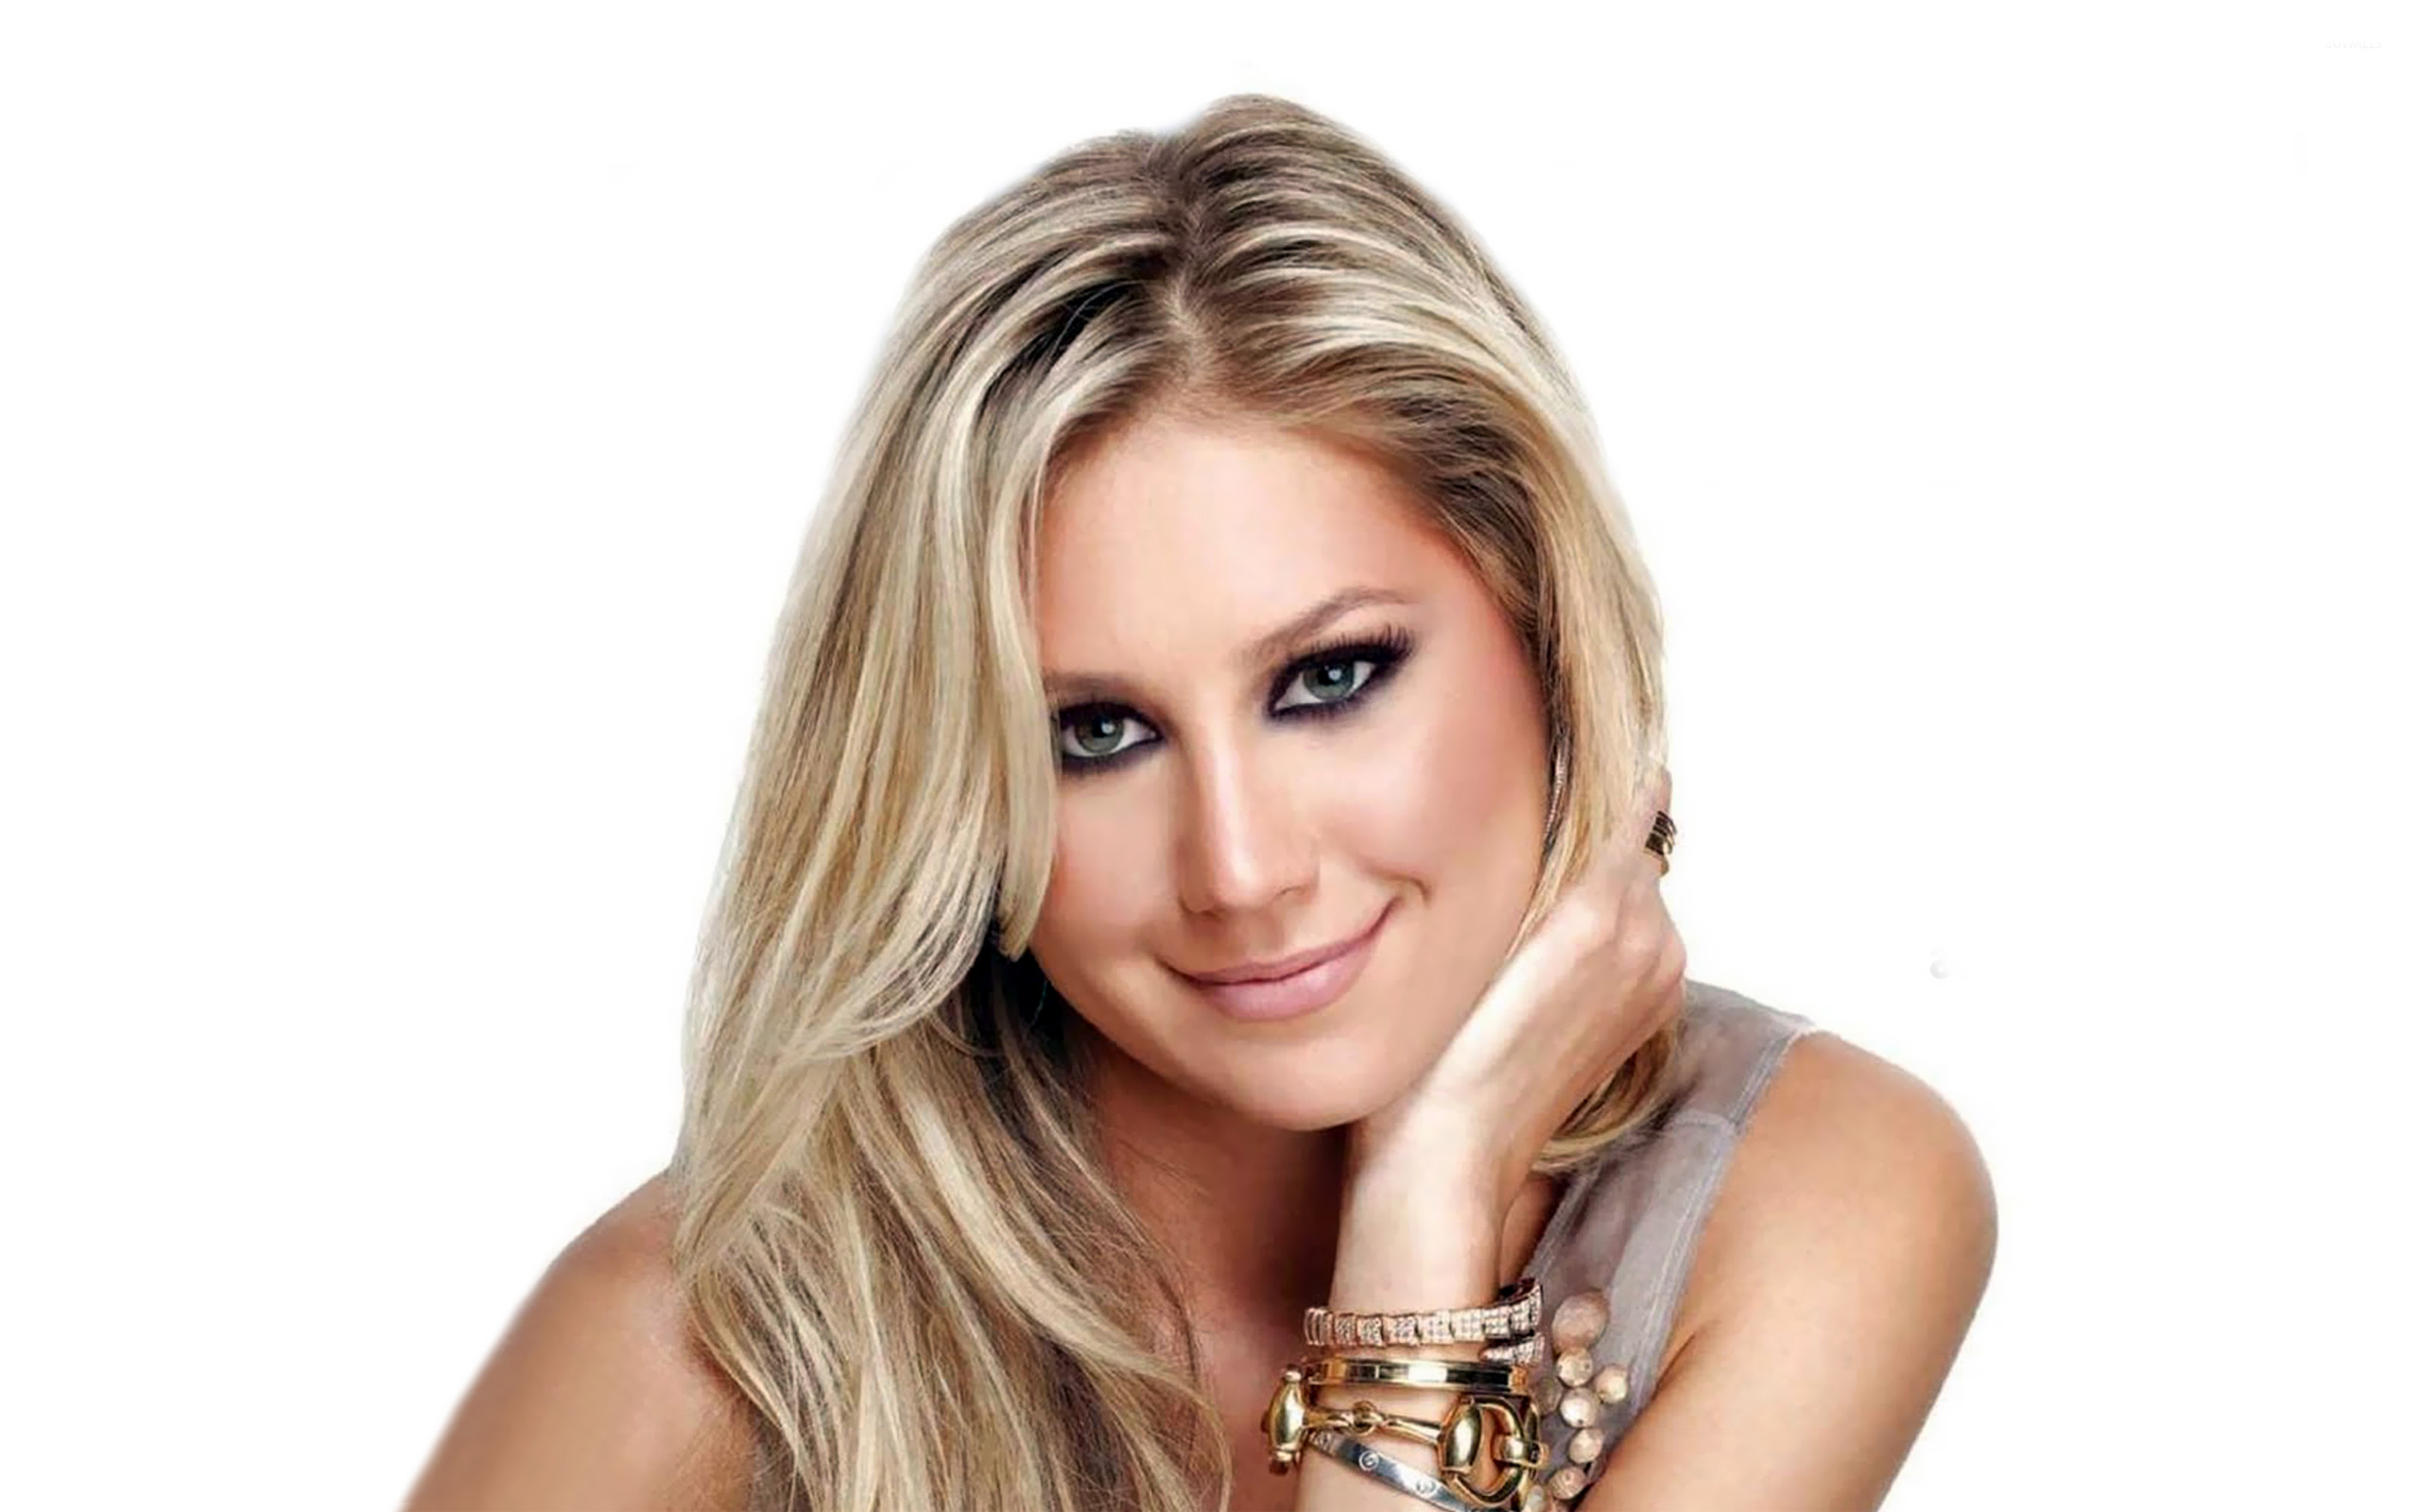 Anna Kournikova Wallpapers Images Pictures Photos AllCelebrities